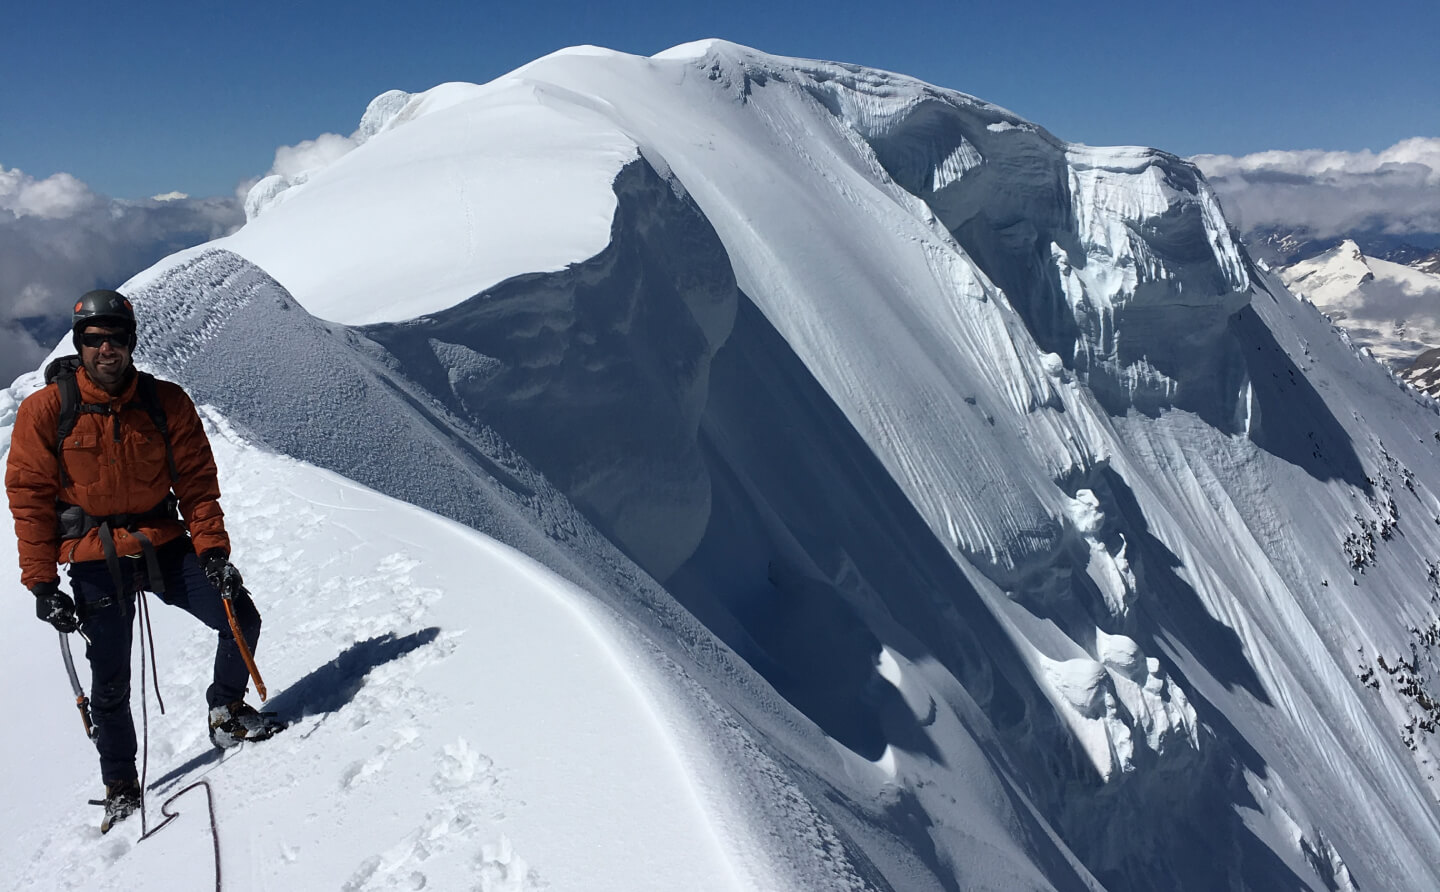 Banff National Park offers some of the best alpine climbing opportunities in North America.